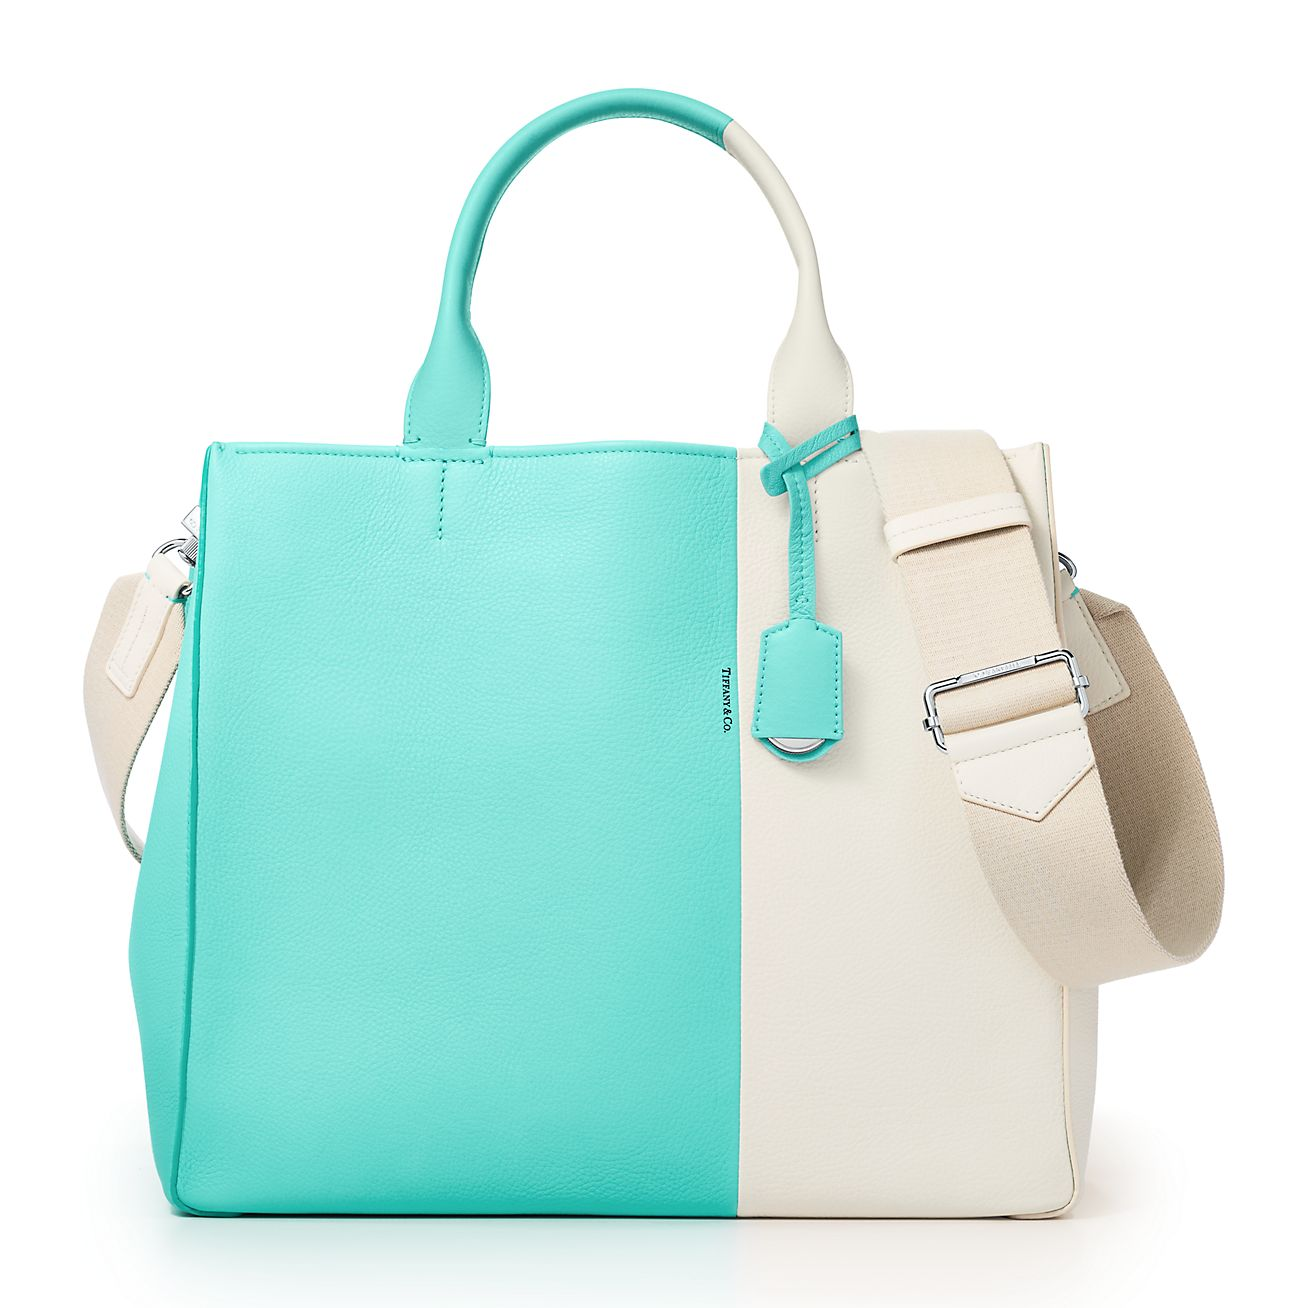 Womens tote in Tiffany Blue grain calfskin leather Tiffany & Co.